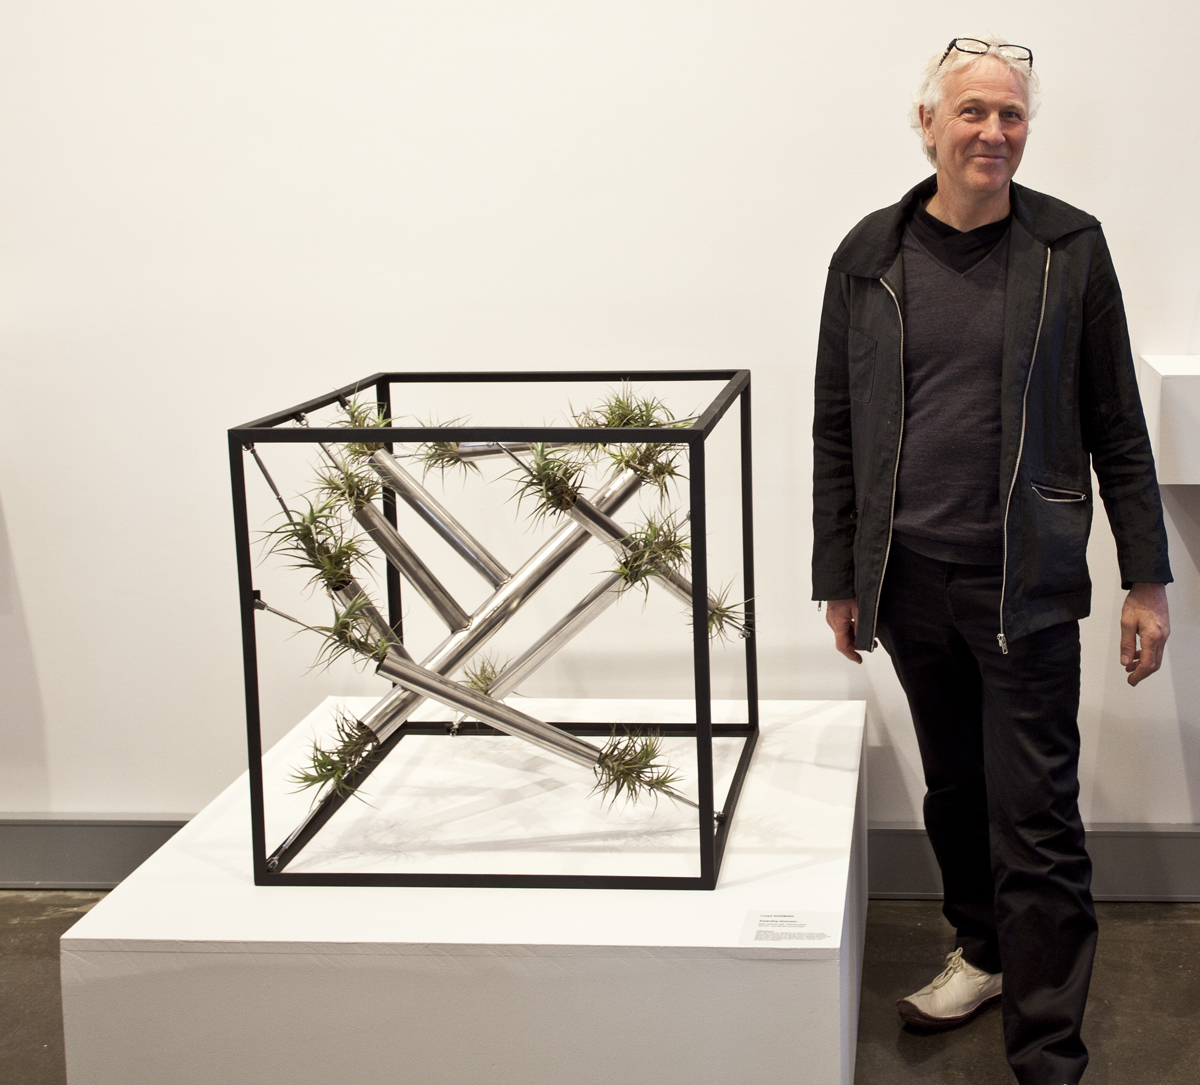 Lloyd Godman with Expanding dimension - a super sustainable plant sculpture